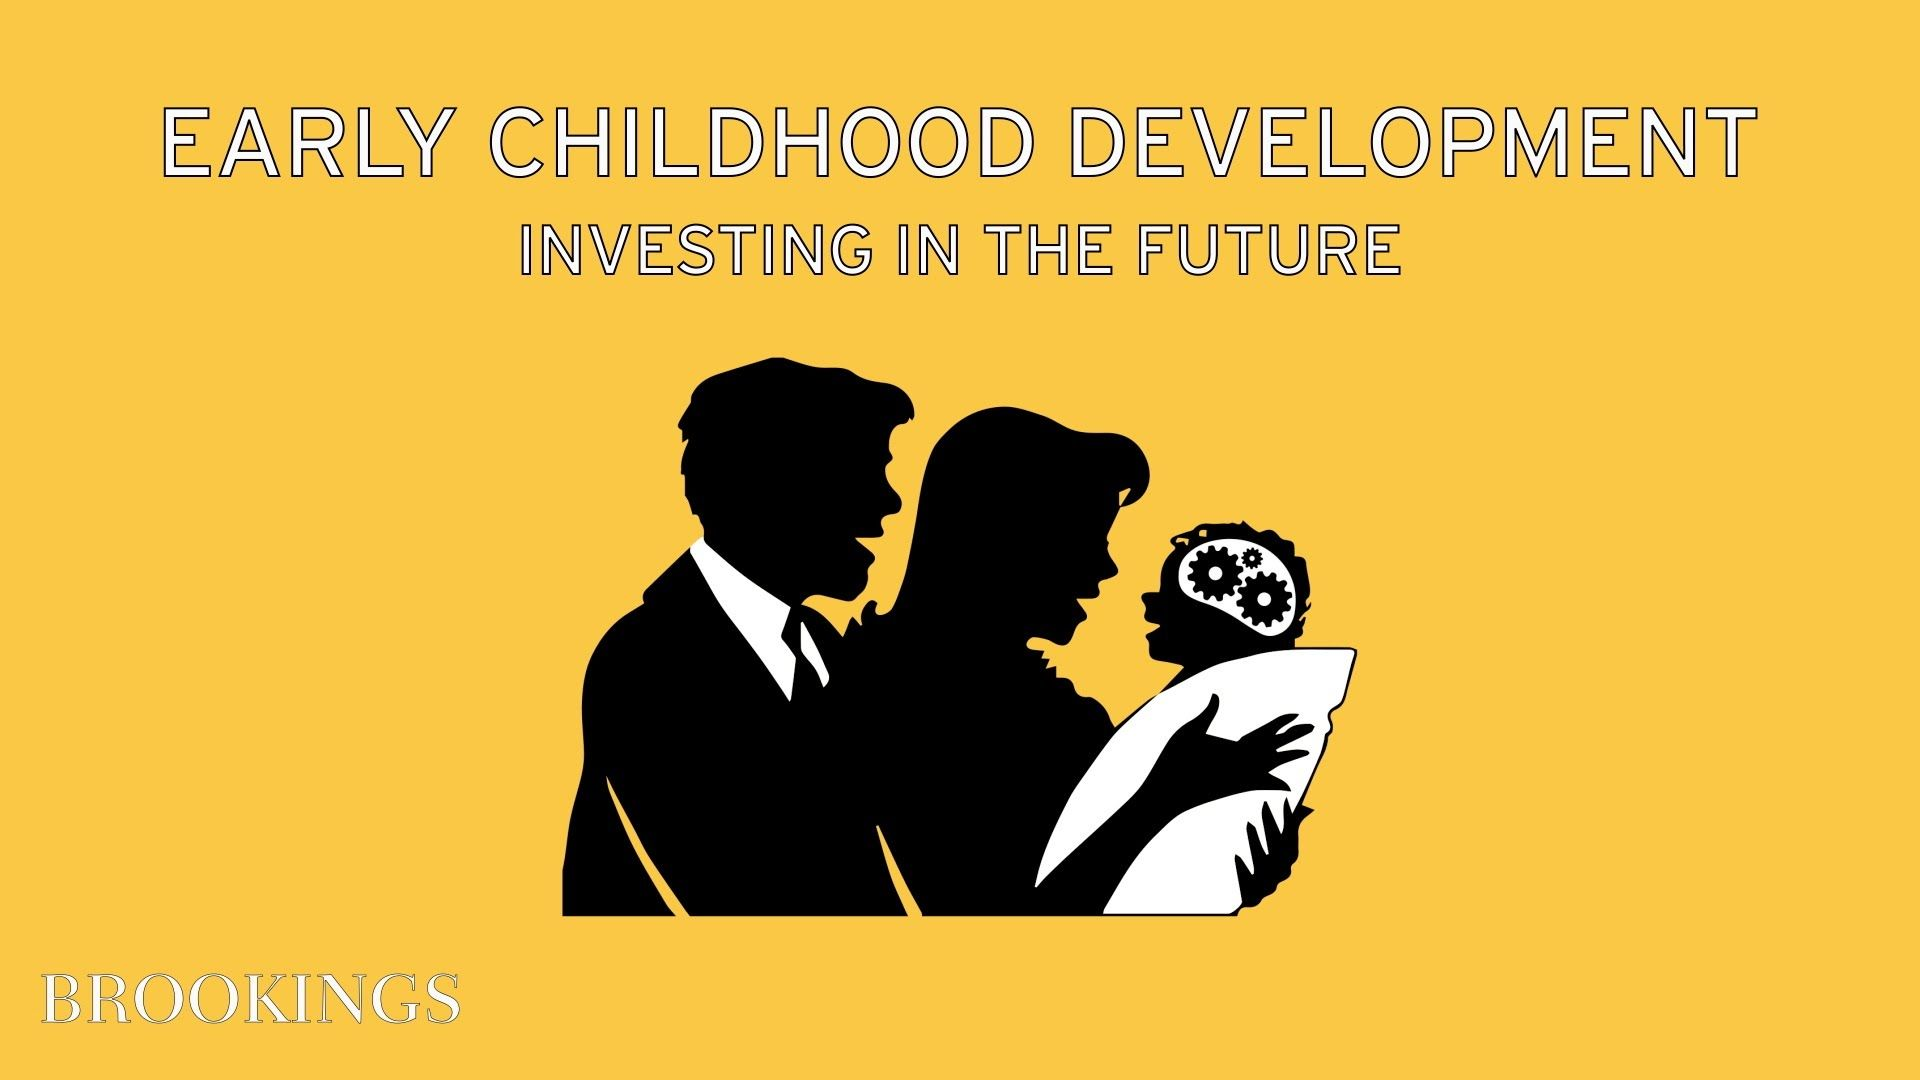 Brookings Institute Video Importance Of Ecd Policy Focus Early